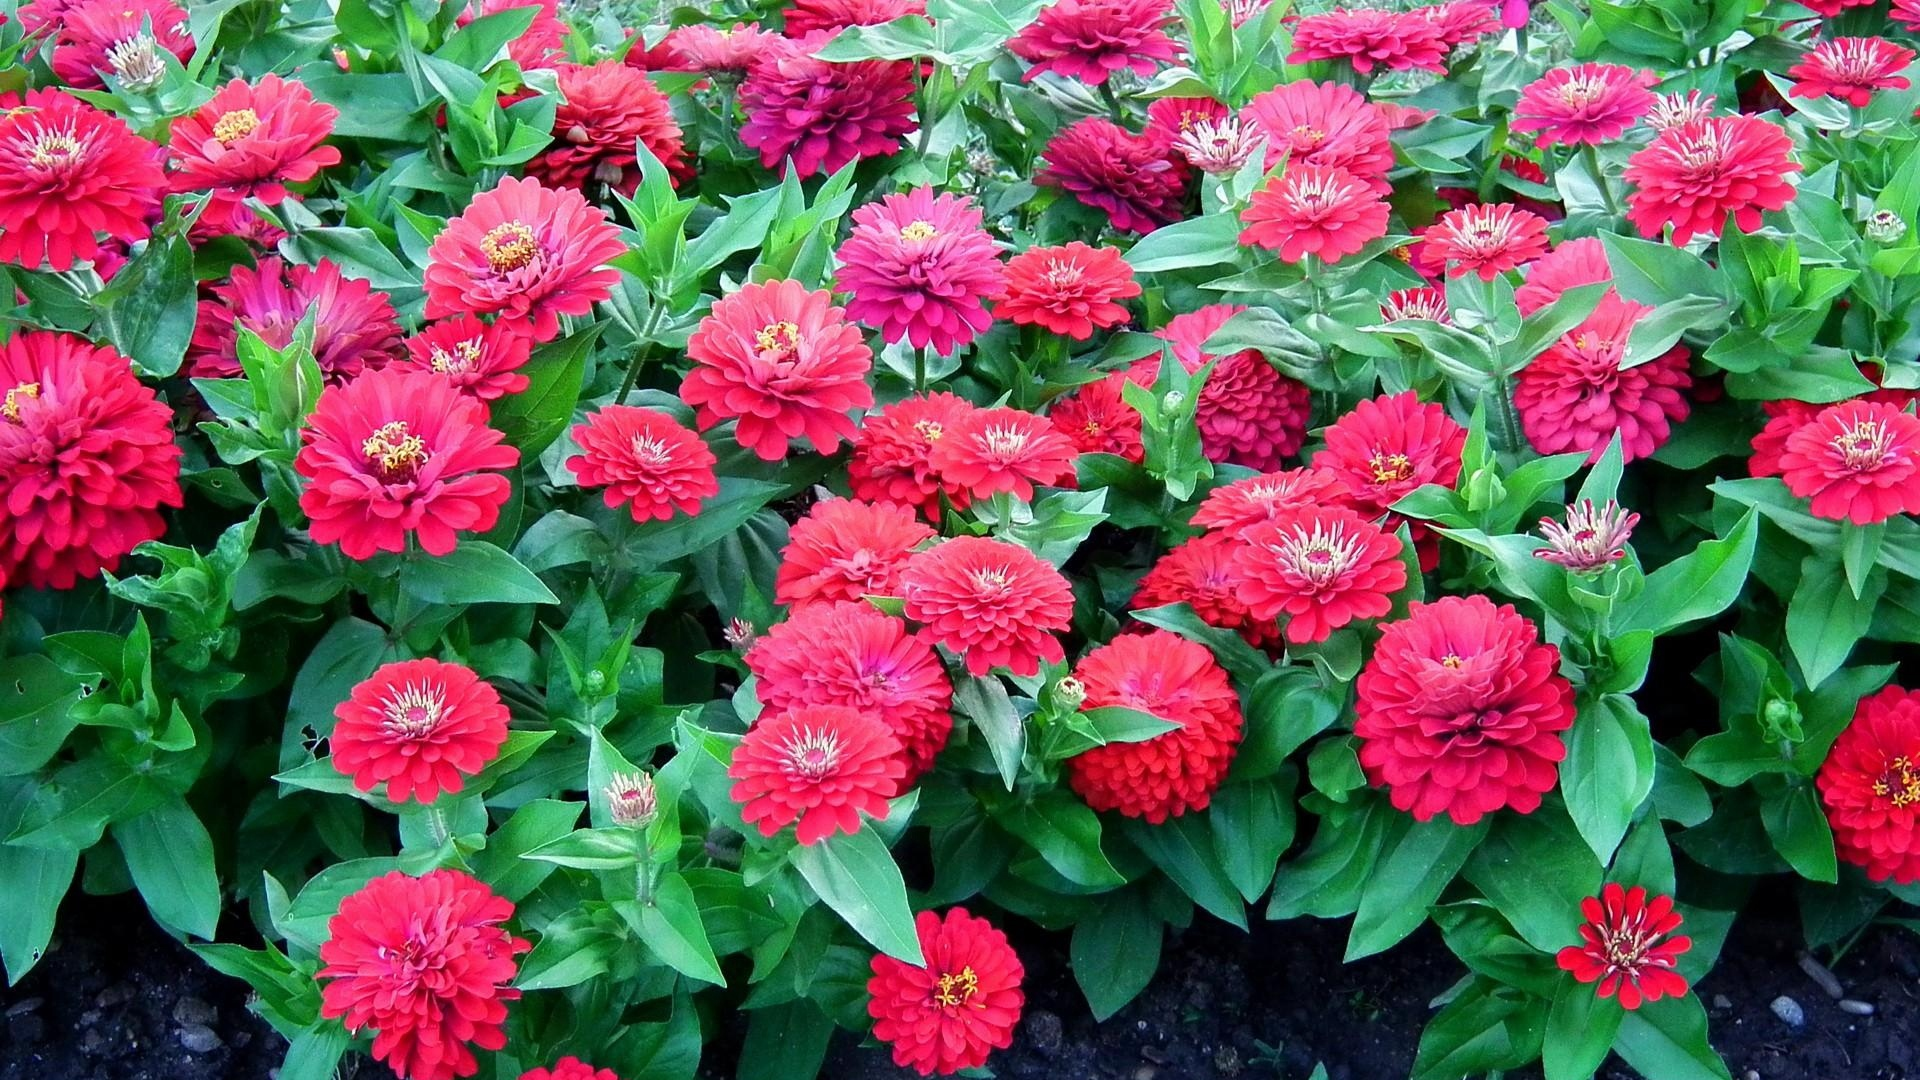 zinnias flowers colorful flowerbed green x